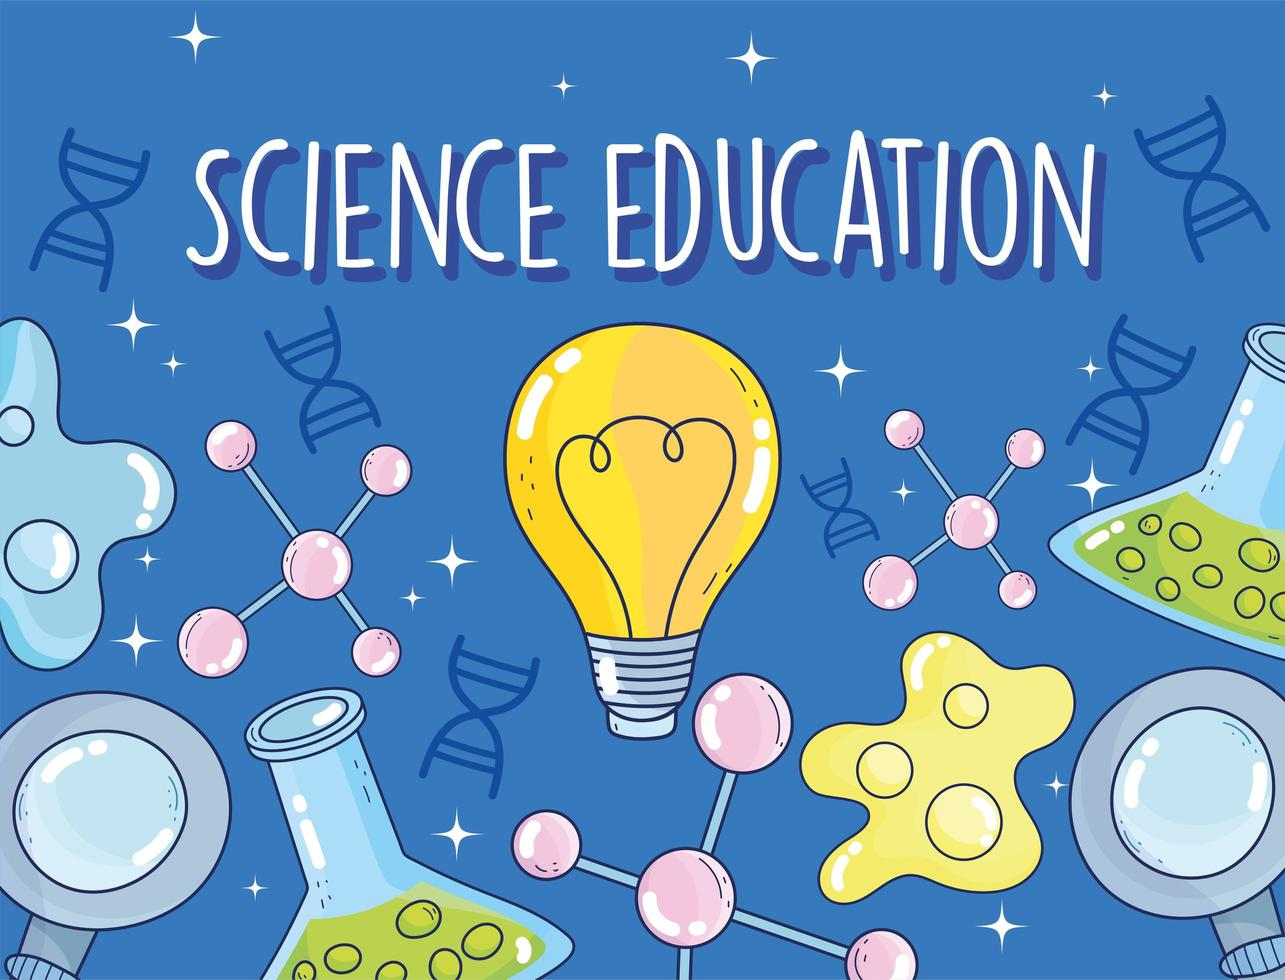 Science education and laboratory banner template vector